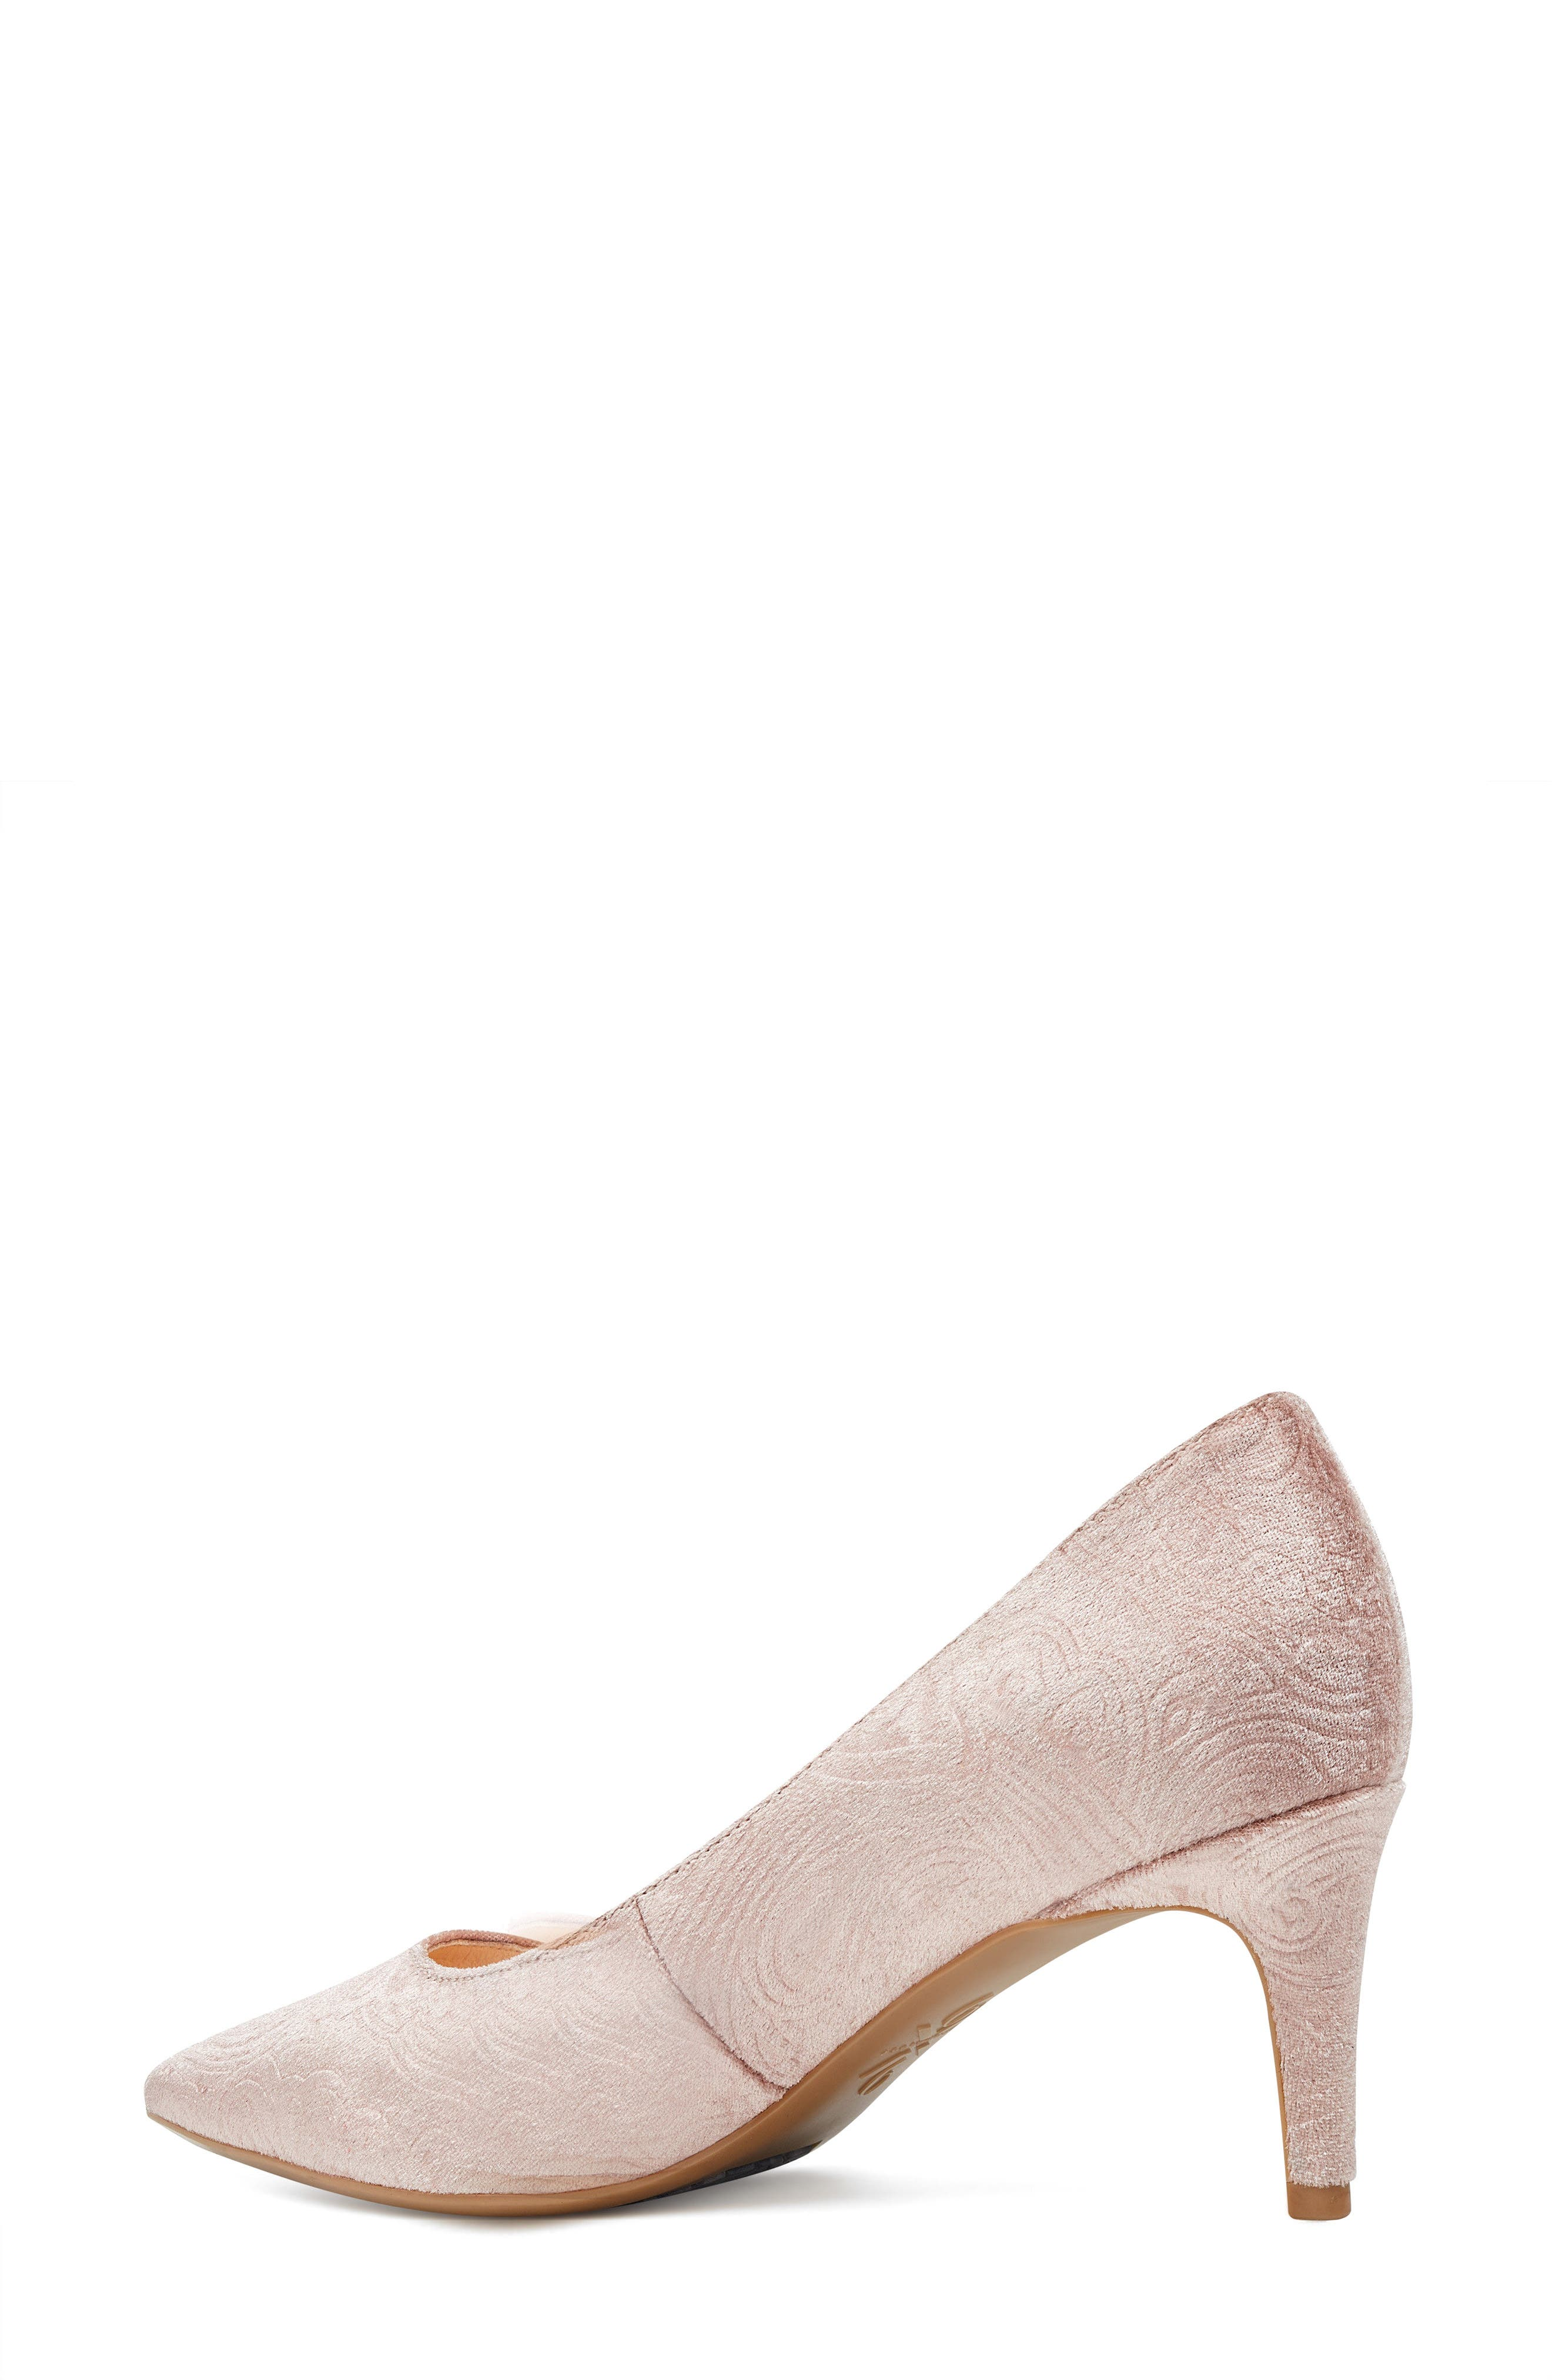 Soho Pointy Toe Pump,                             Alternate thumbnail 11, color,